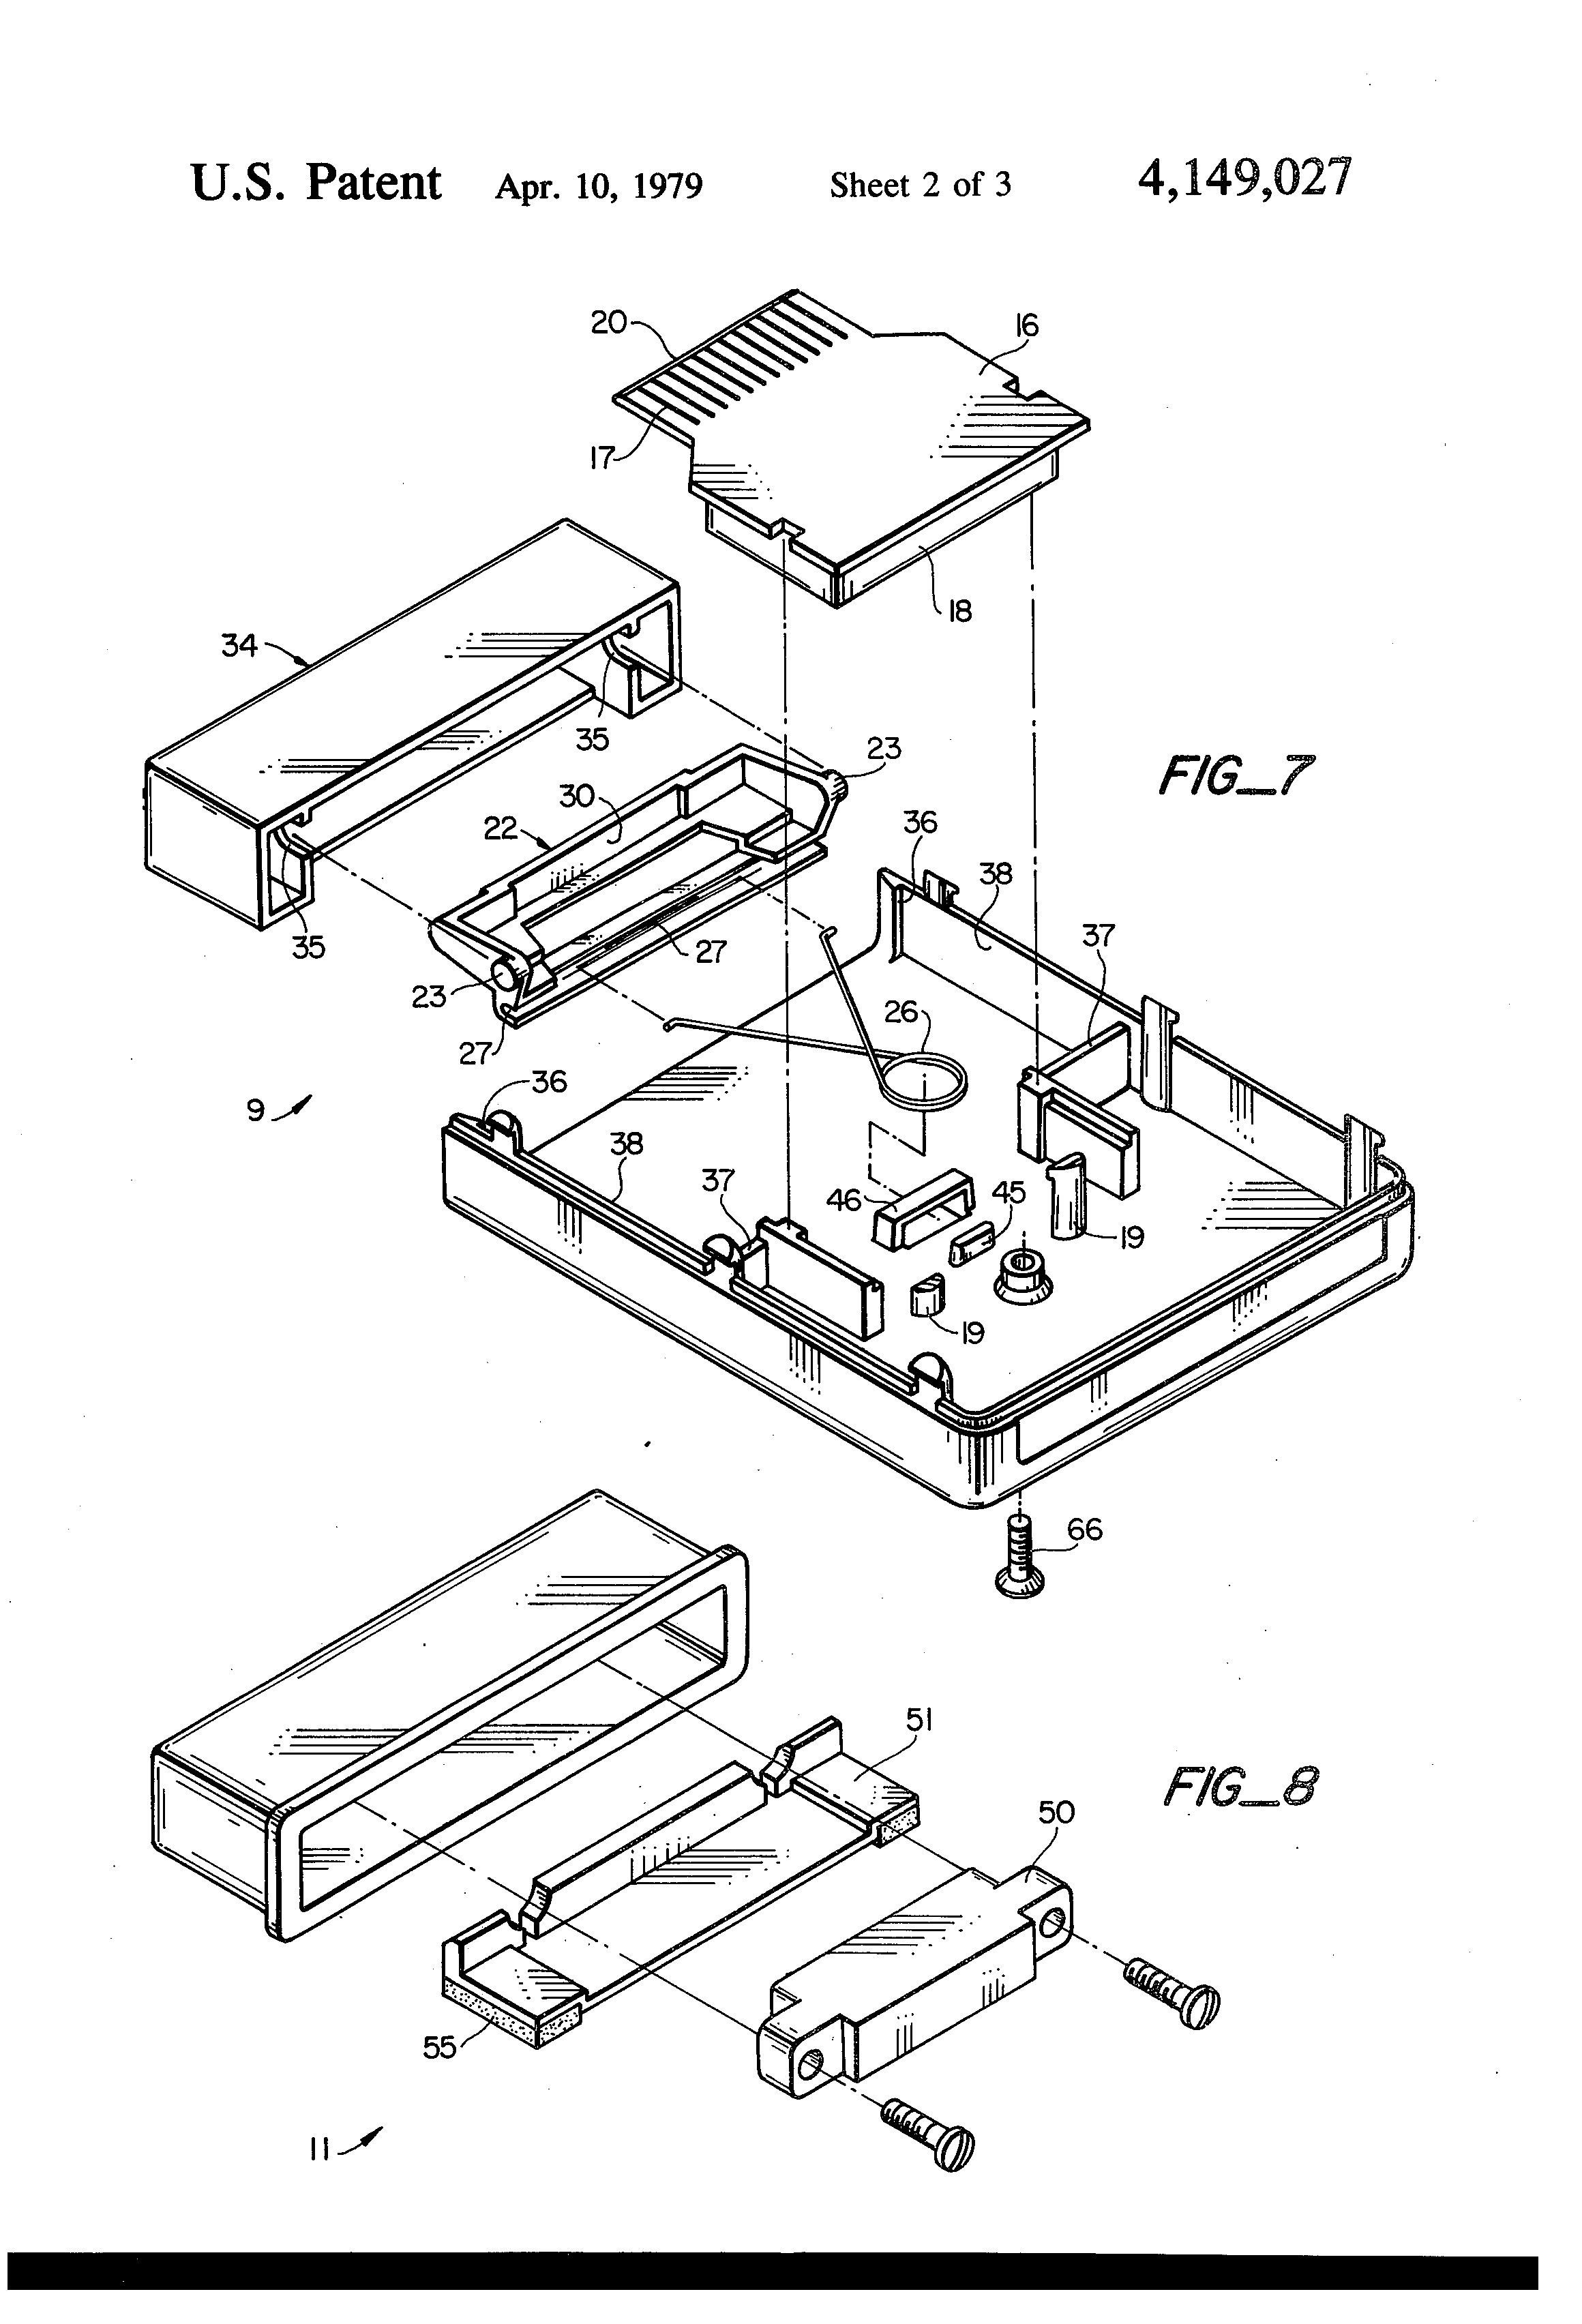 fileatari cartridge patent drawingpng